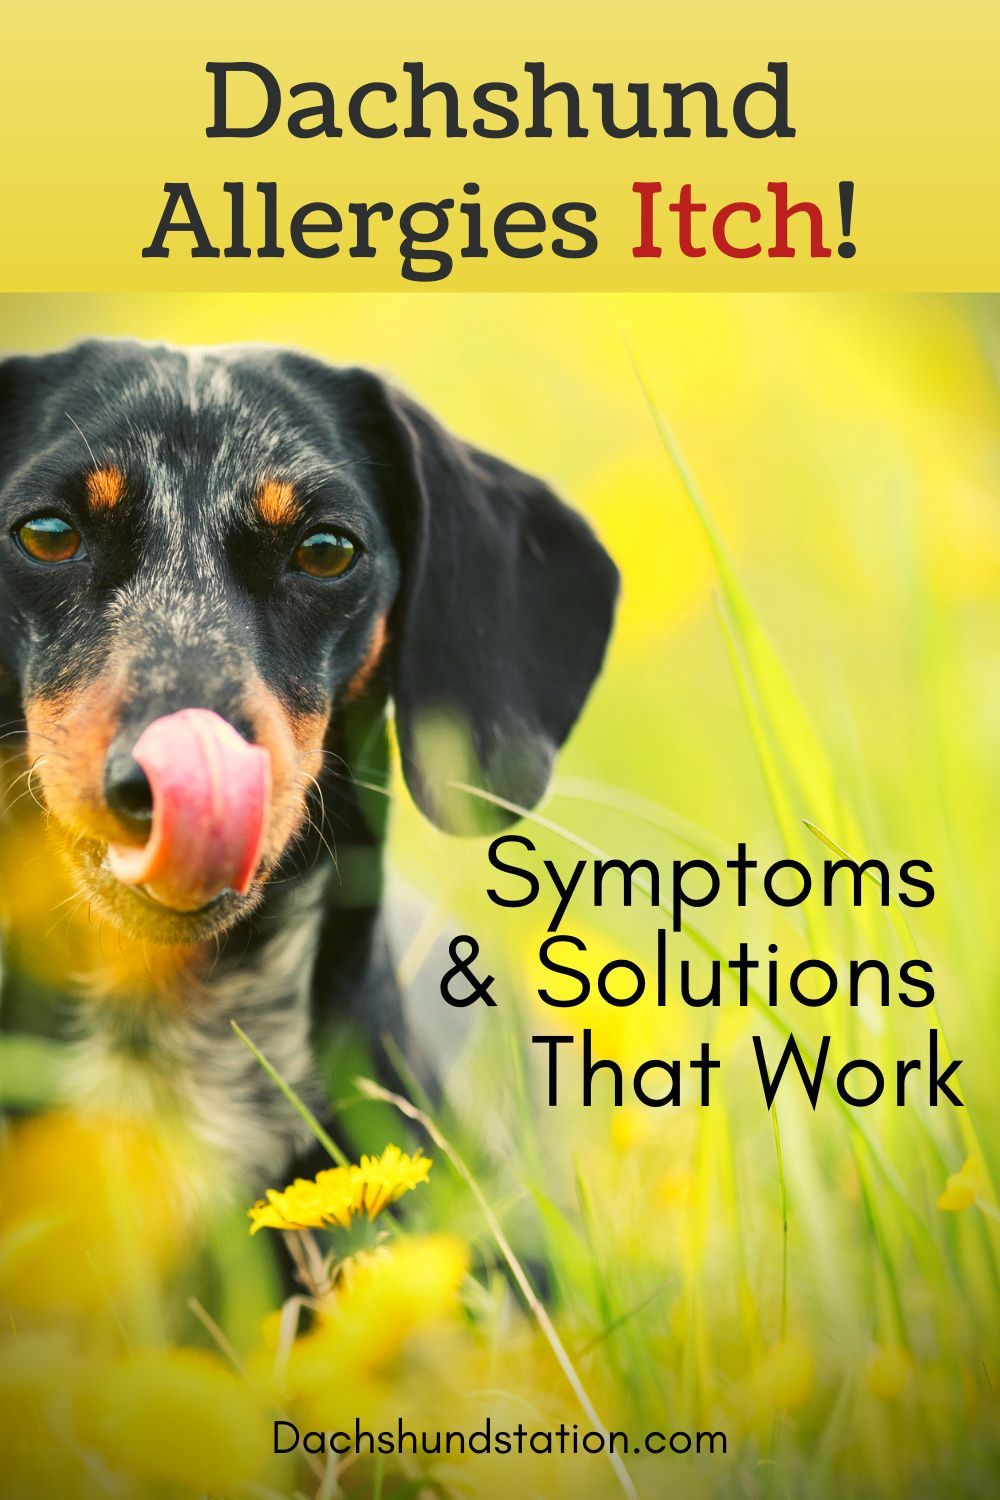 Itchy Dachshund Allergies 3 Solutions That Can Help Dachshund Station In 2020 Dog Allergies Dachshund Big Dog Little Dog